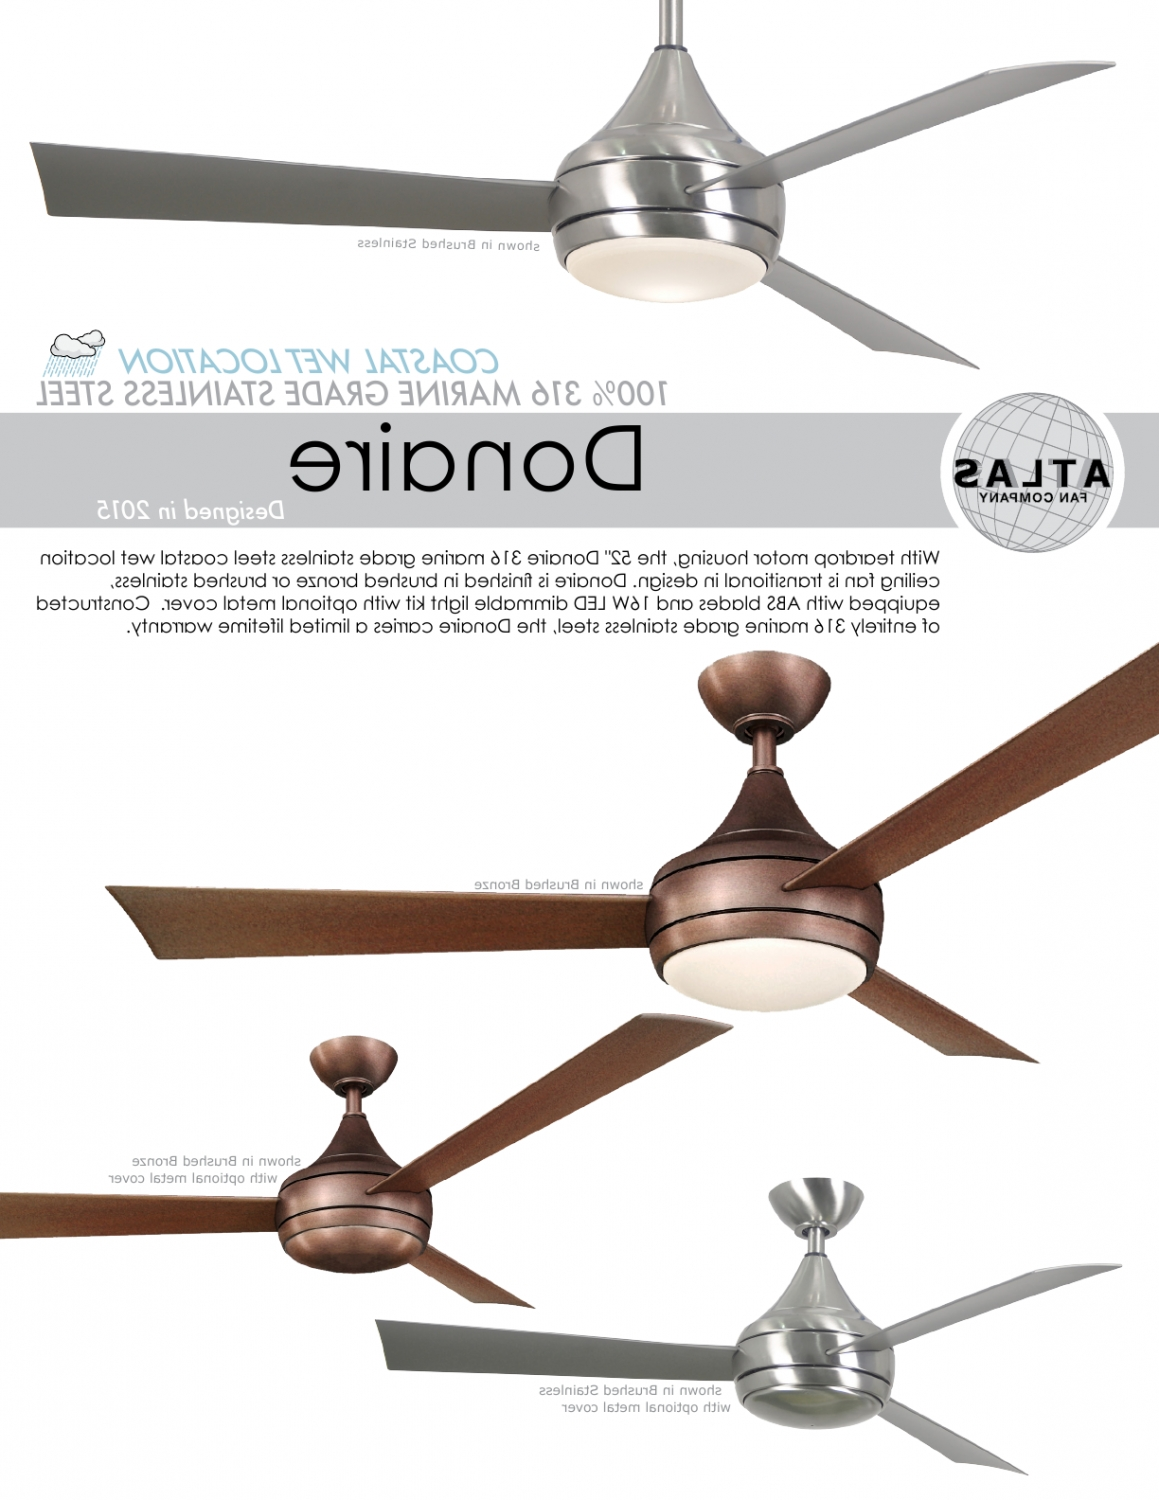 Most Recent Donaire Ceiling Fan For Balcony Terrace Verandah Outdoor Spaces With Regard To Stainless Steel Outdoor Ceiling Fans With Light (View 19 of 20)